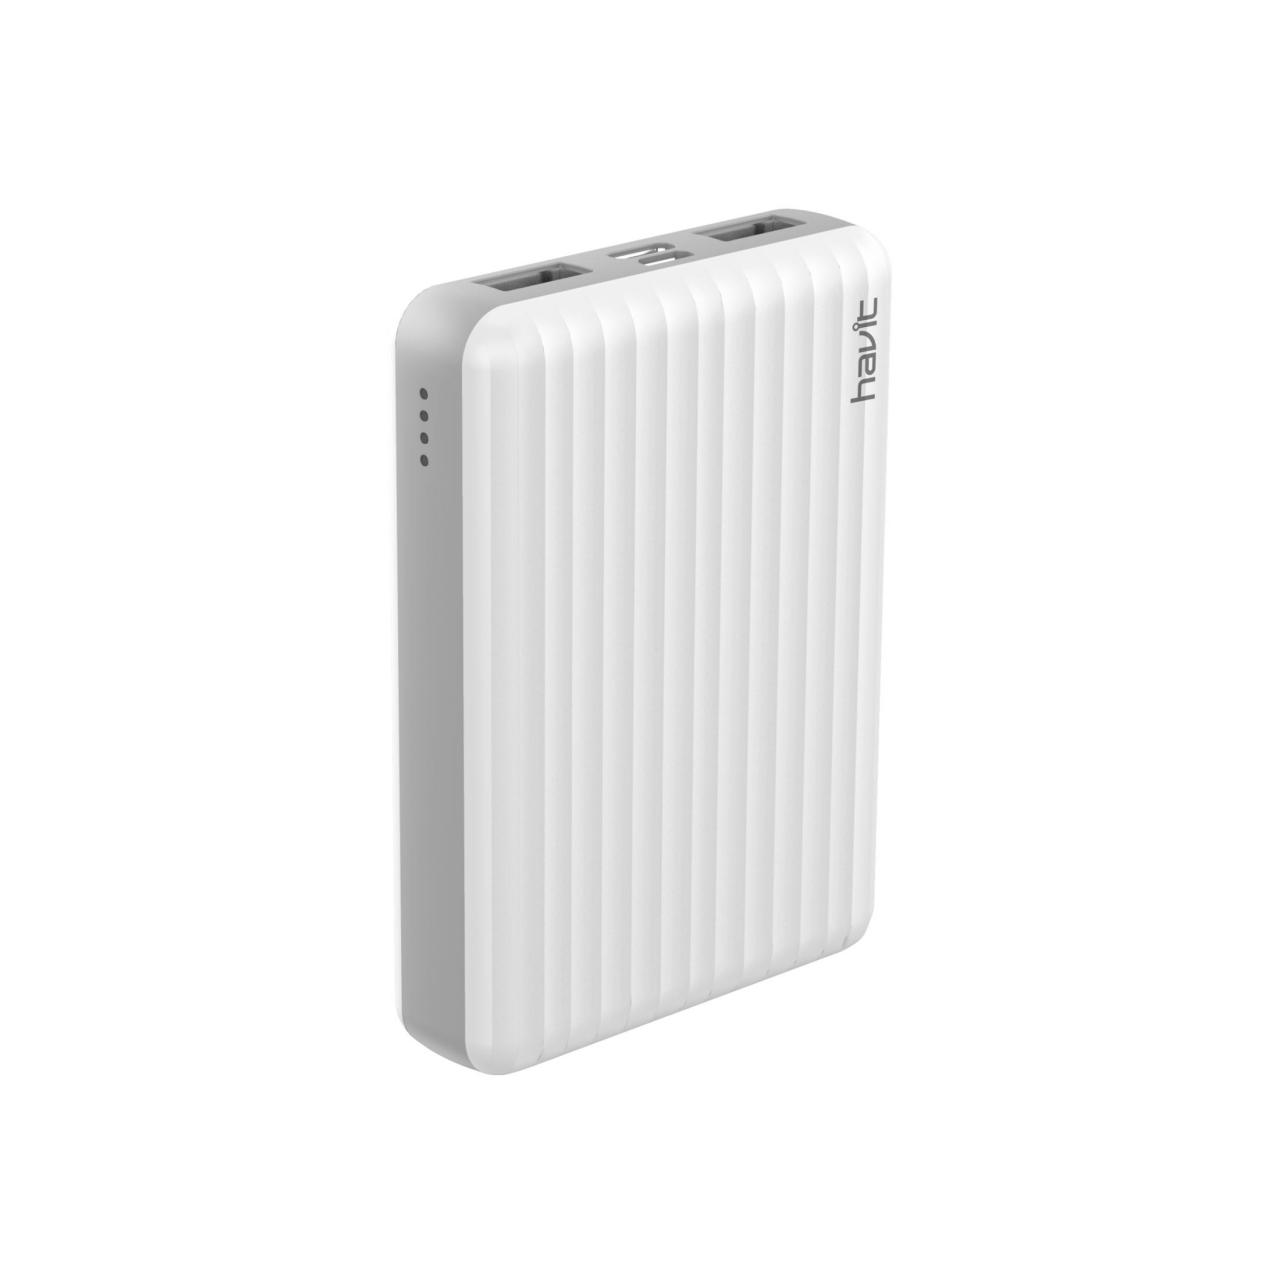 Tahirah Power Bank Havit H553 10.000 mAh Tamaño Credit Card